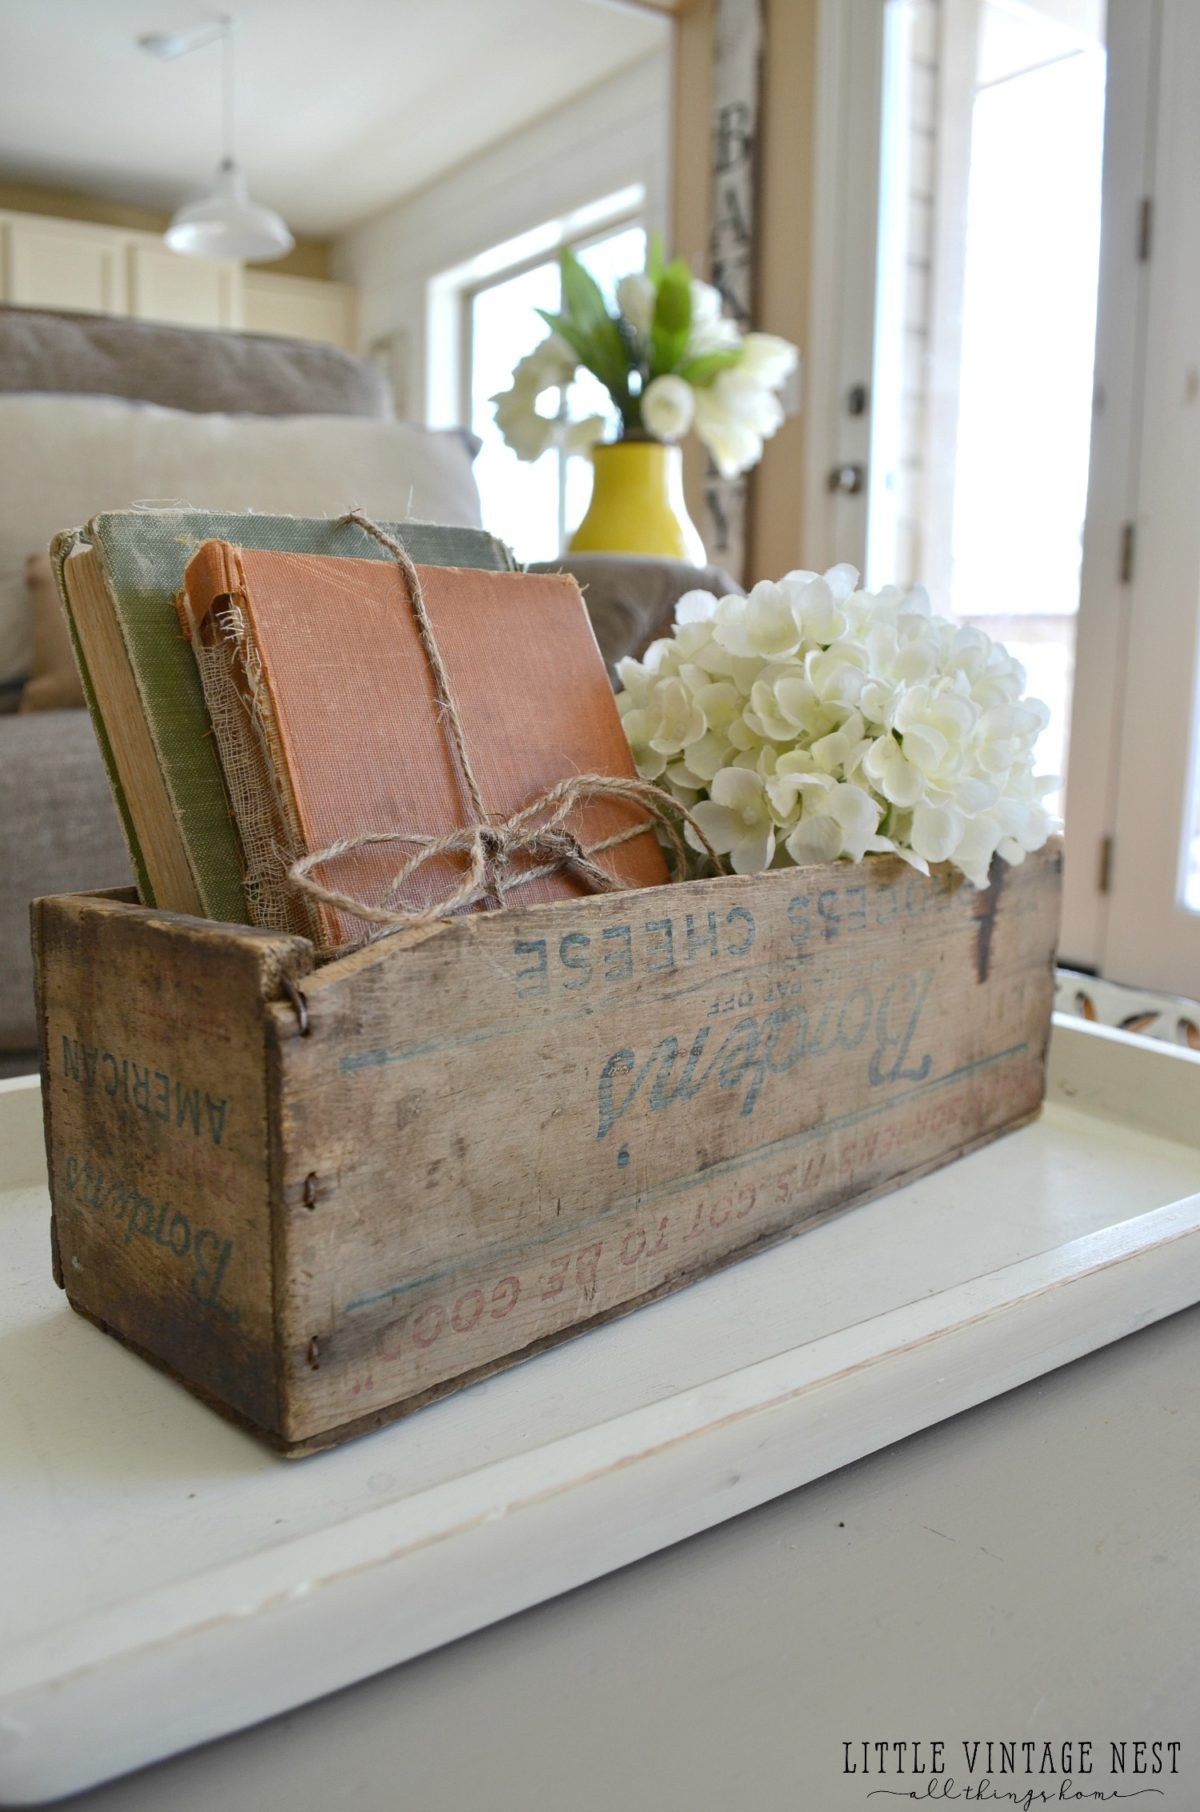 How To Decorate With Vintage Decor Old Books And Cheesebox